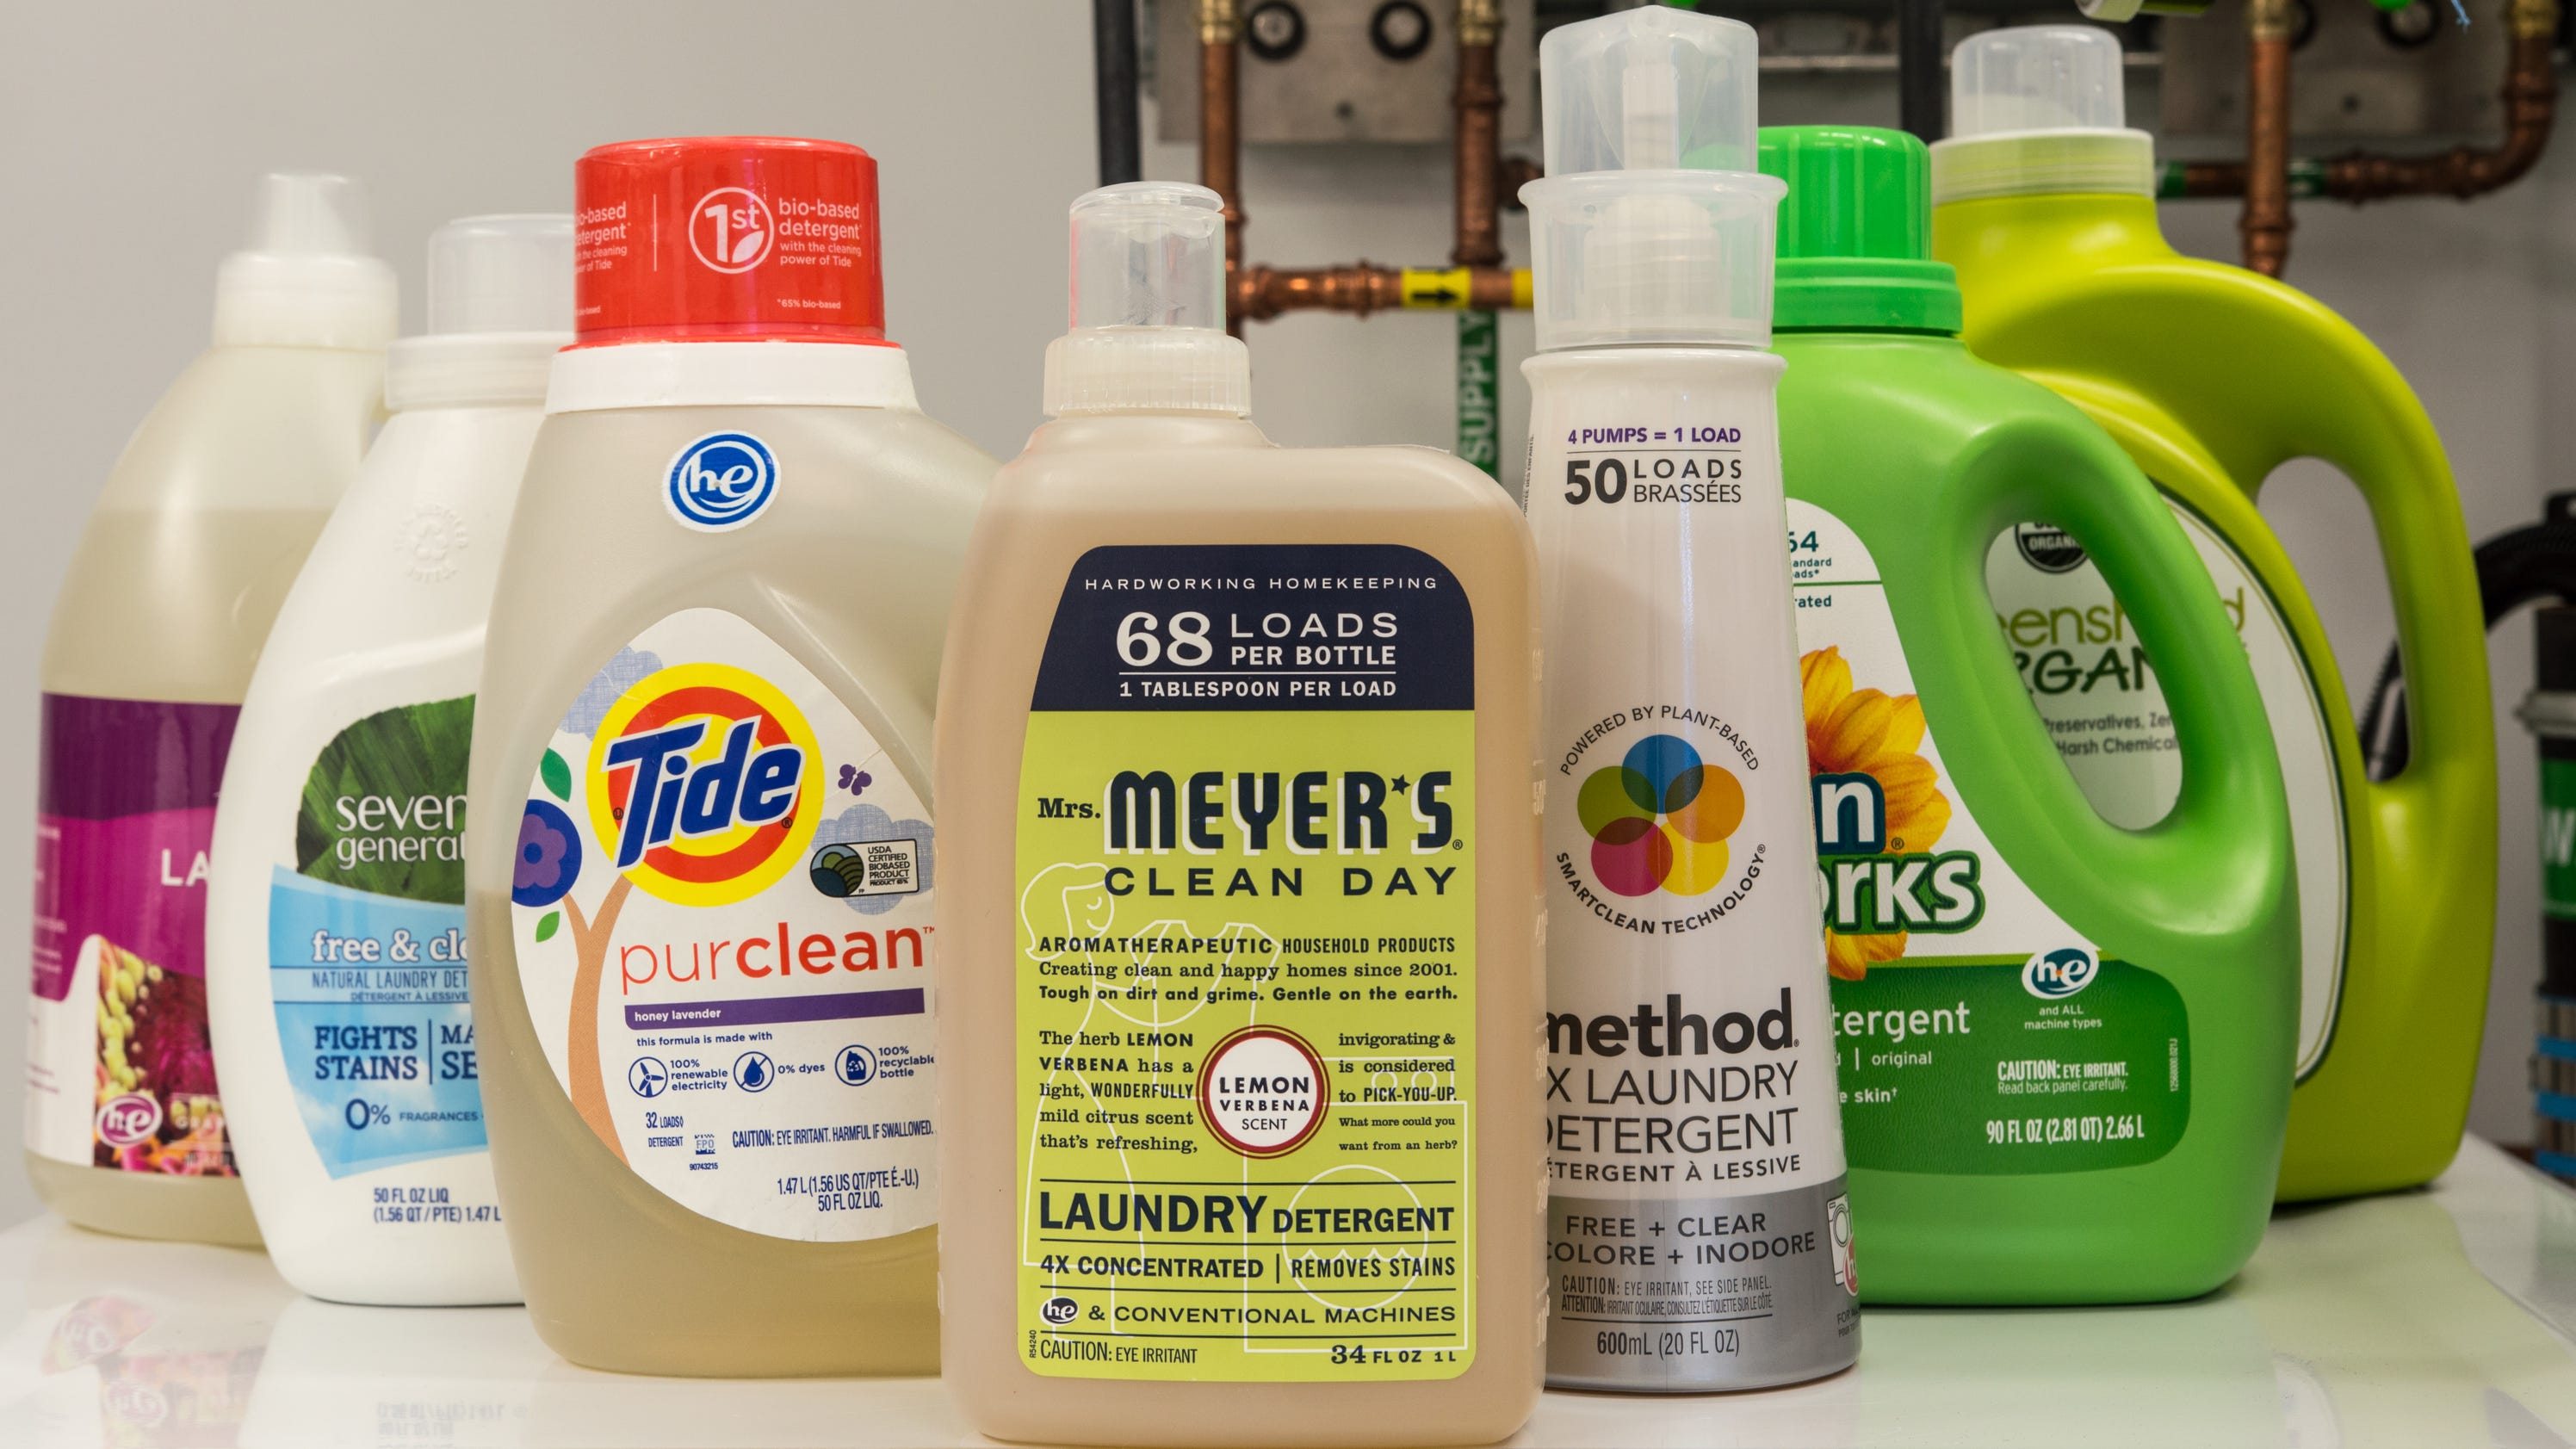 Green up your laundry this earth day with the best eco friendly detergents rssfeeds usatoday com 2017 04 21